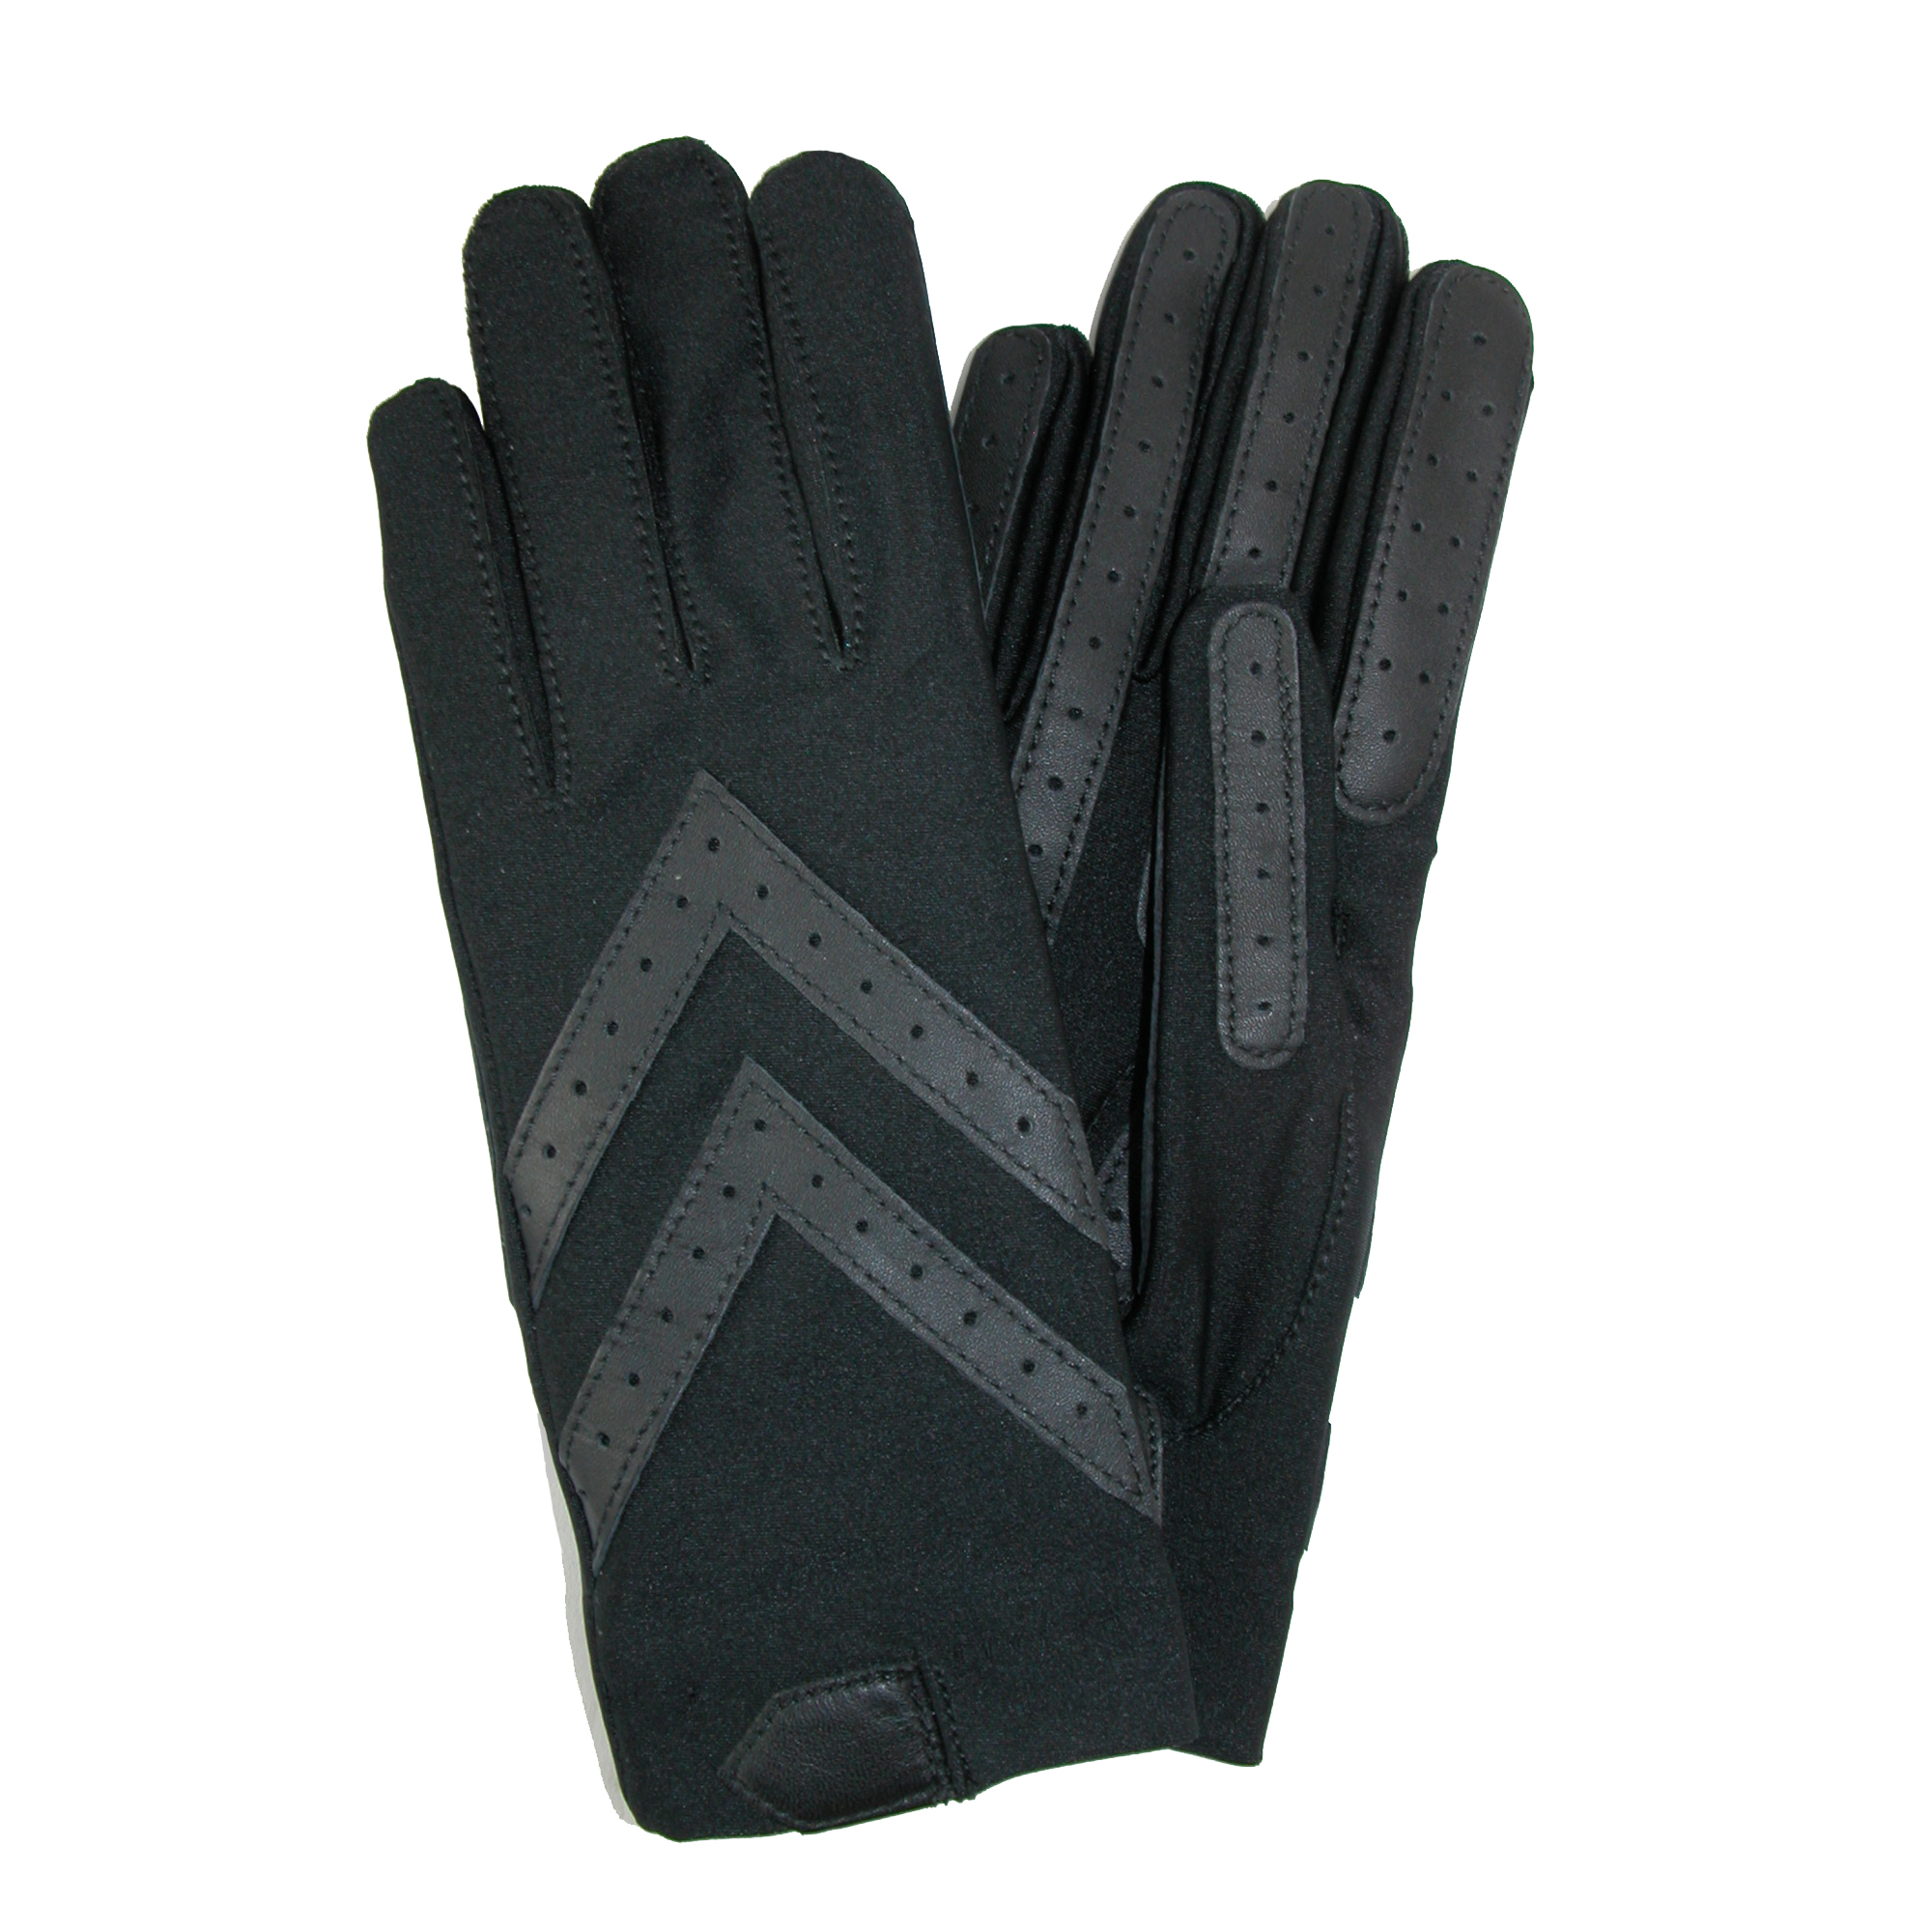 Womens leather gloves vancouver - Womens Leather Gloves Vancouver 12